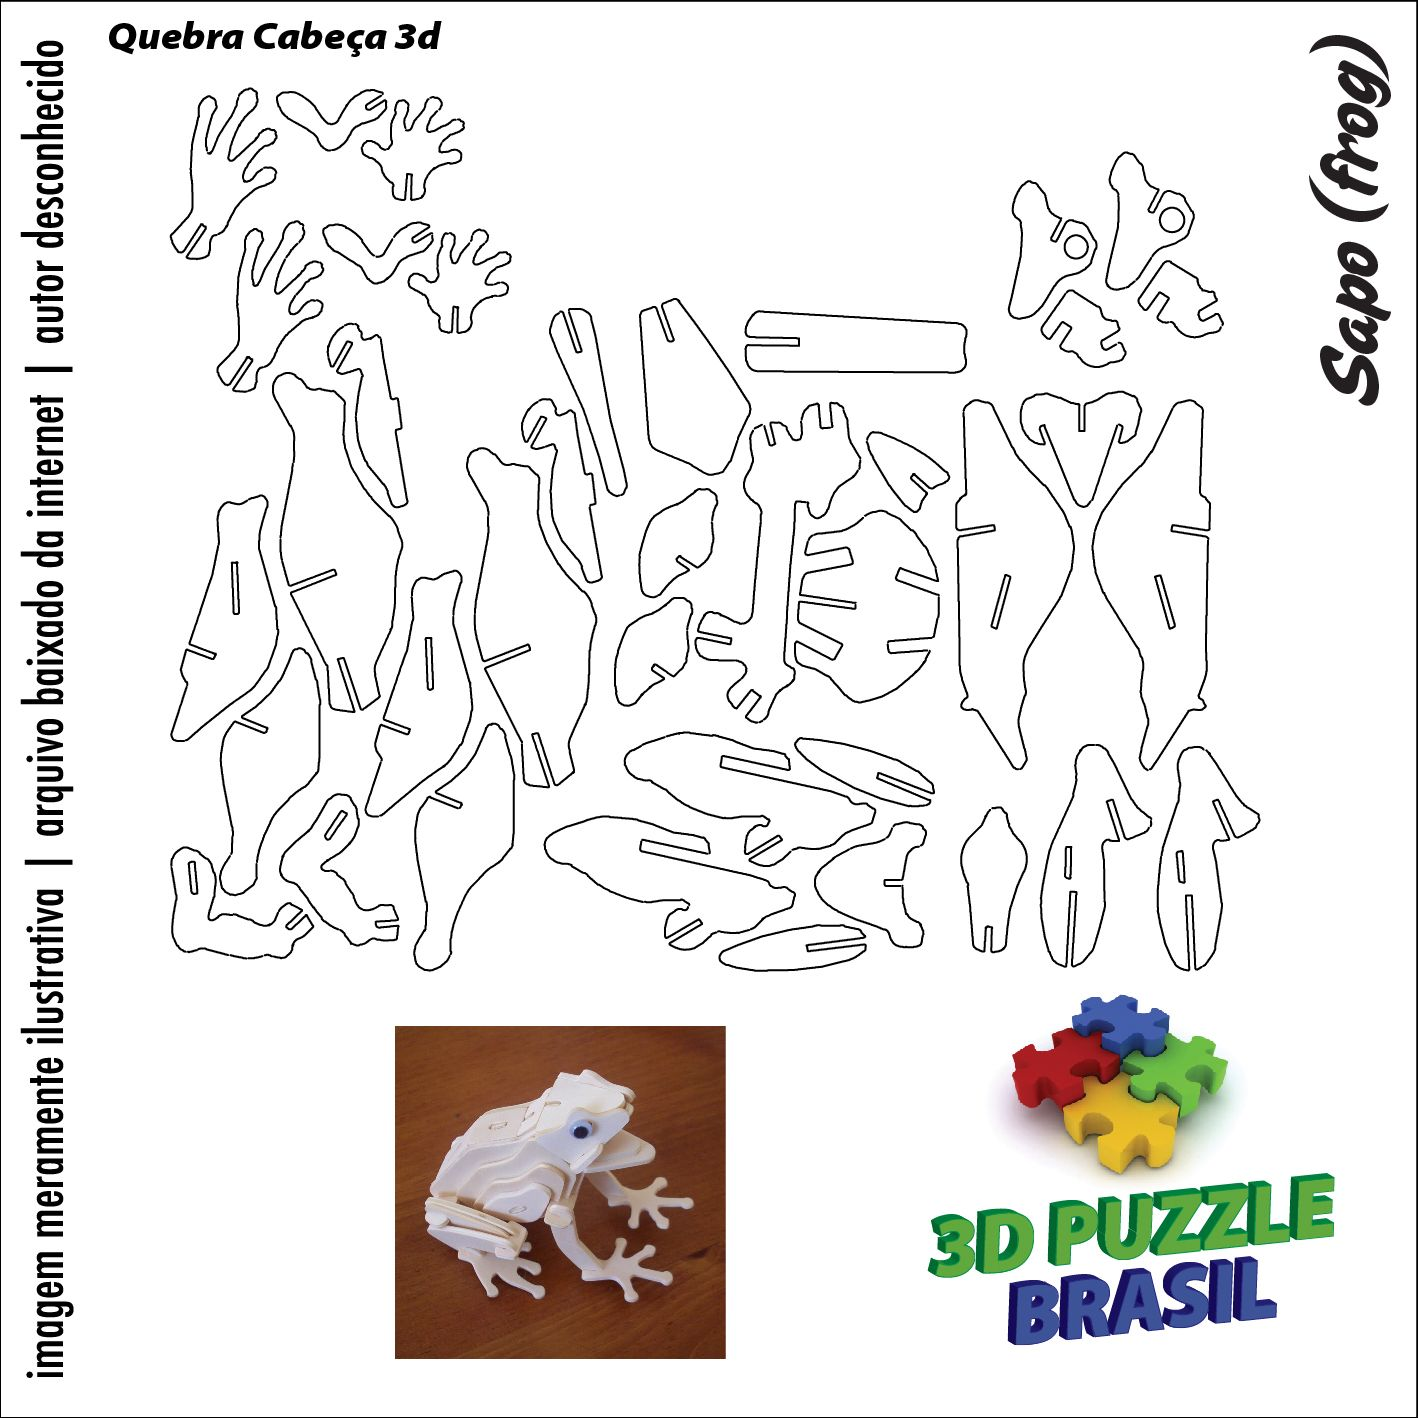 The Art Of Animal Character Design Pdf Free Download : Arquivos para download cnc laser d puzzle brasil